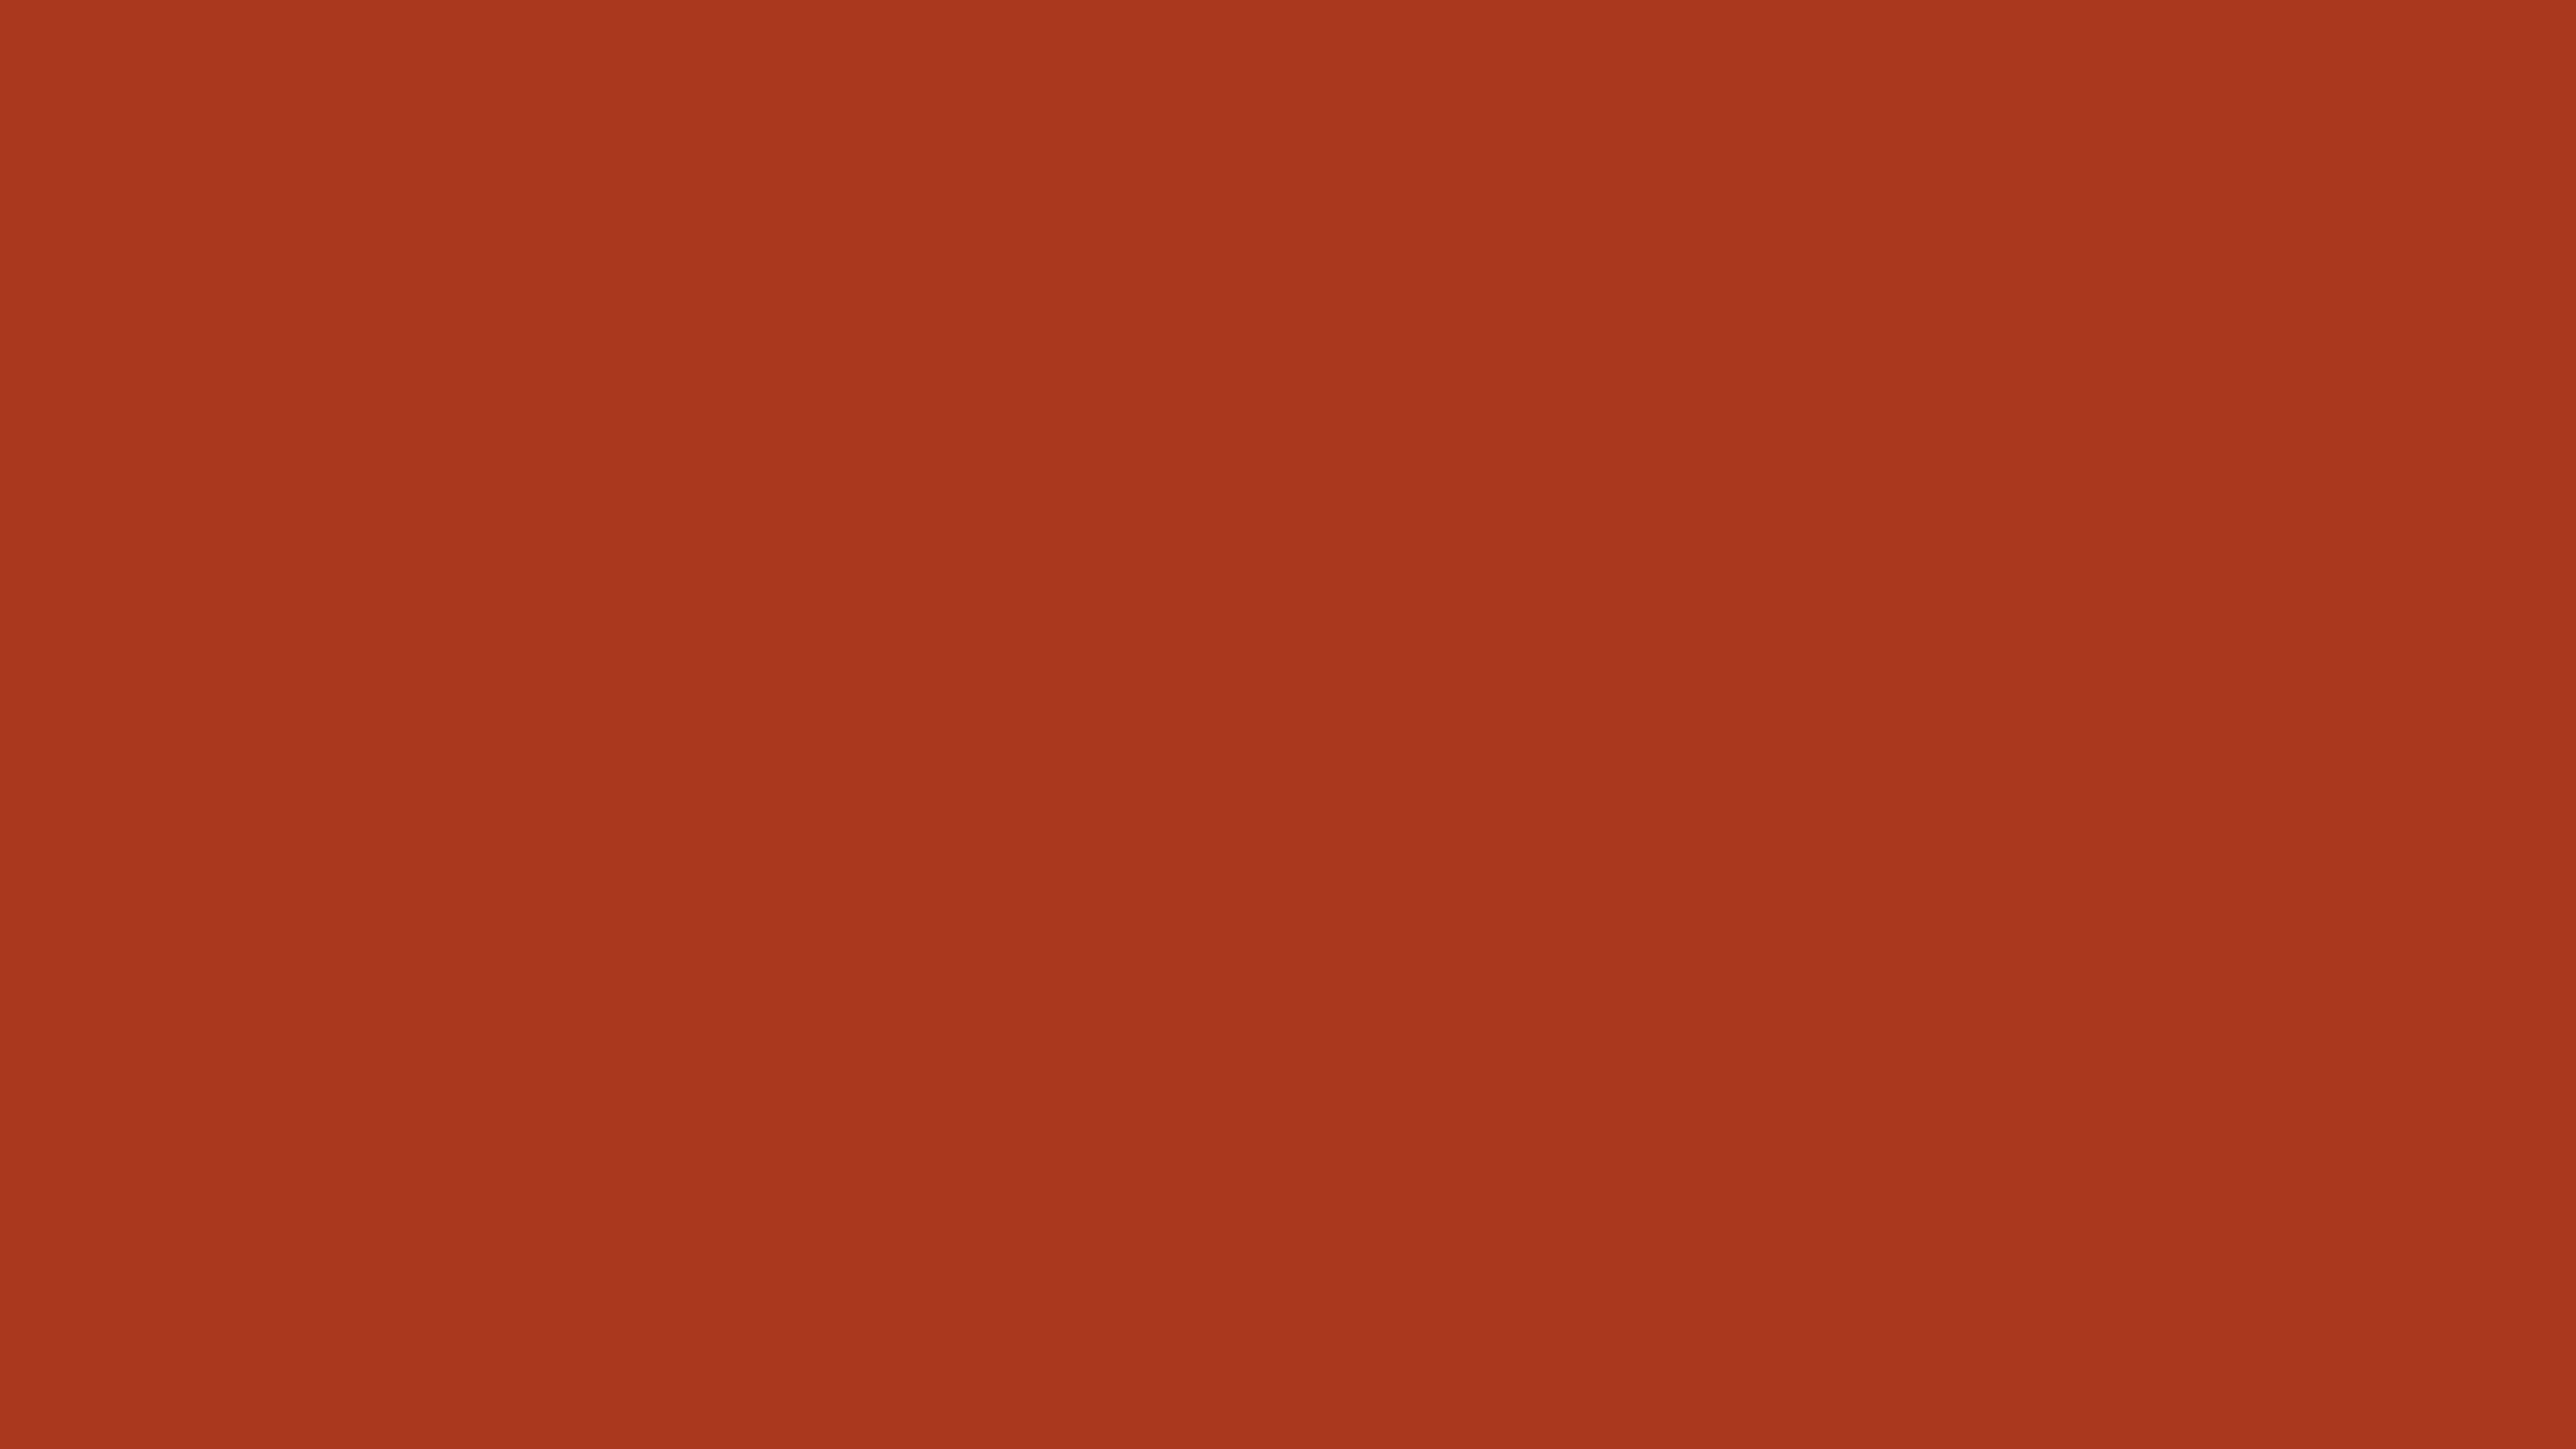 3840x2160 Chinese Red Solid Color Background